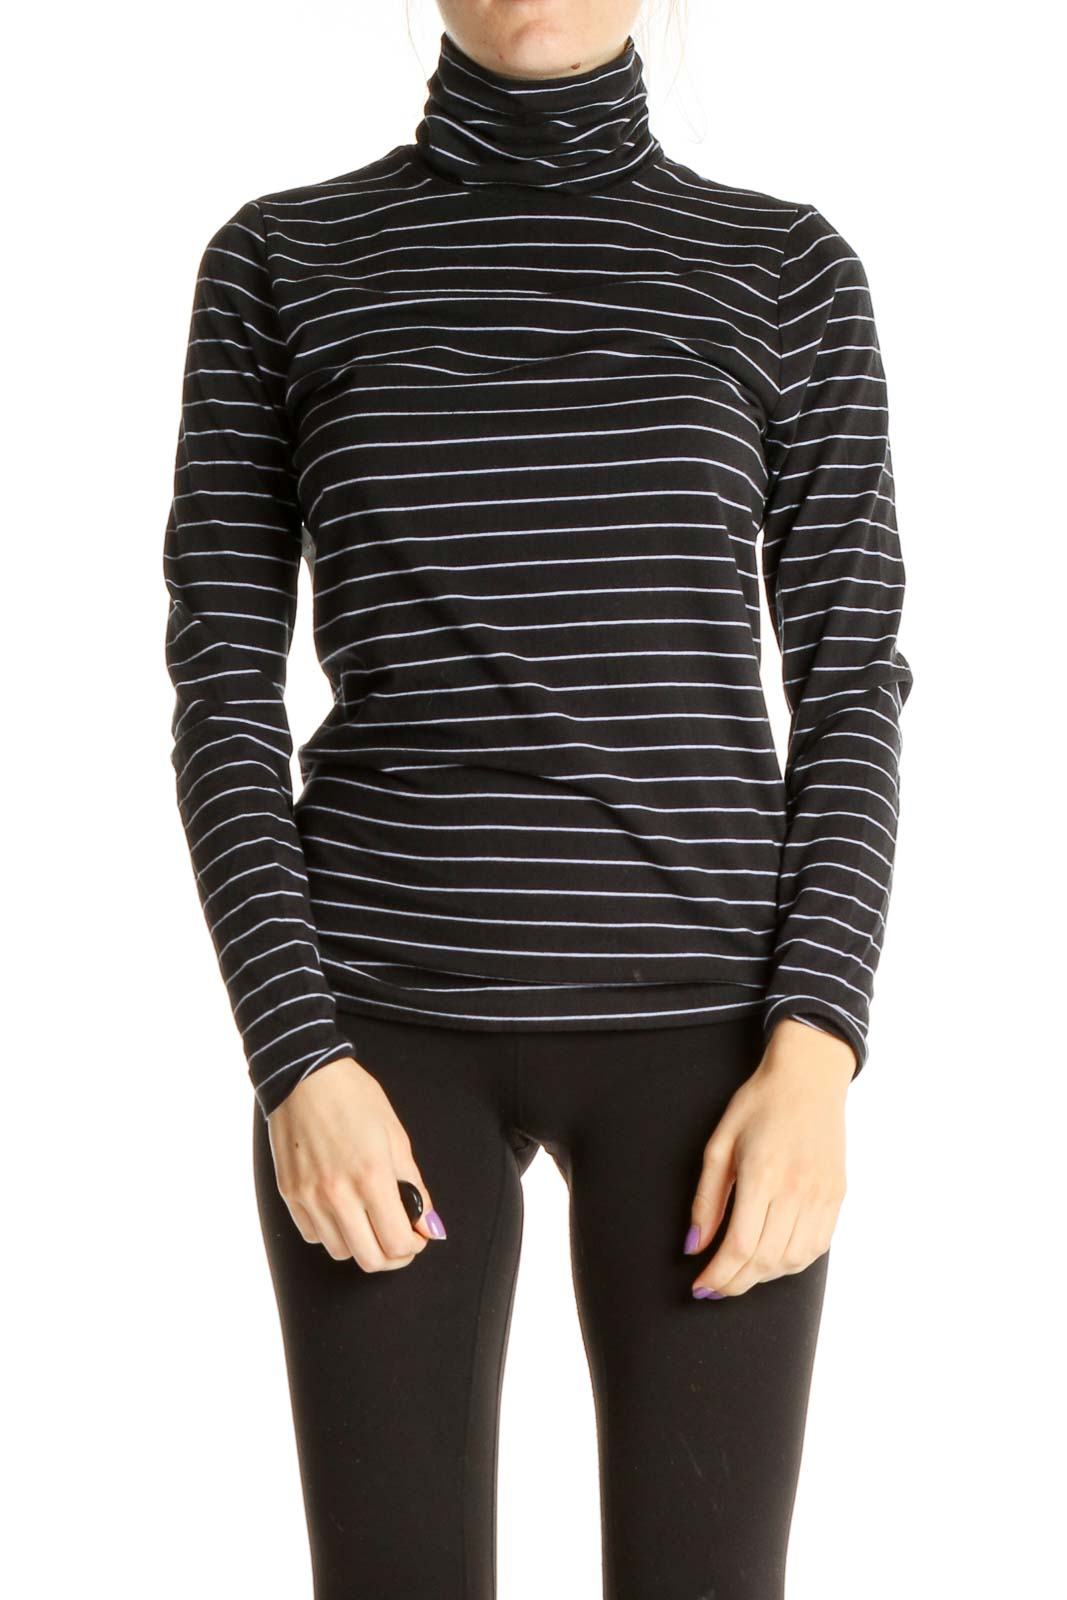 Black Striped Casual Shirt Front